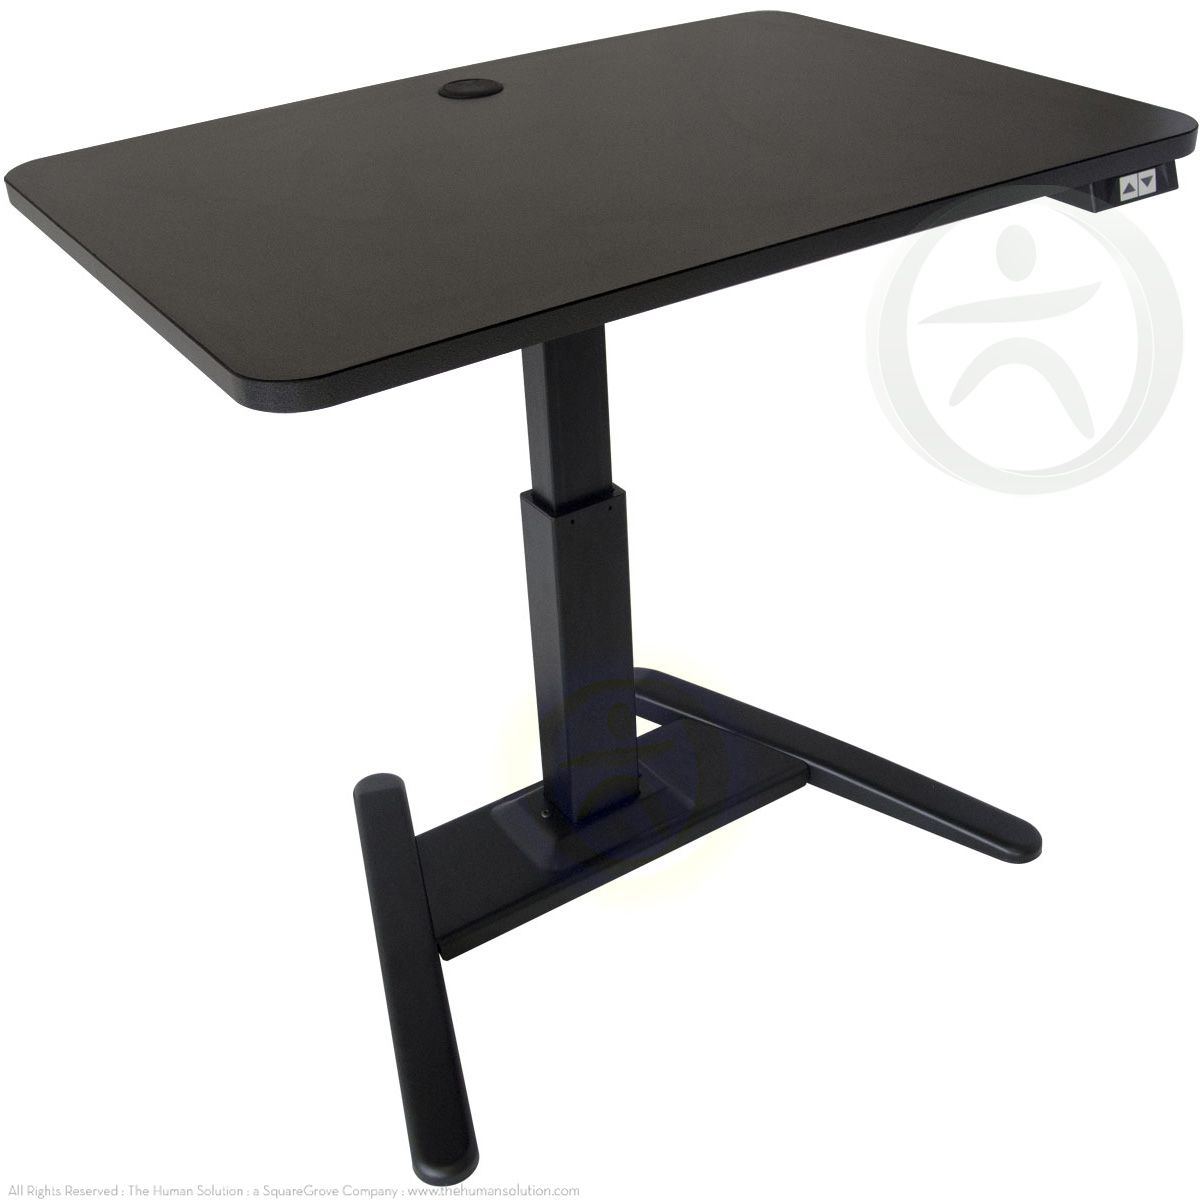 Perfect The UpLift 975 Is A Single Leg Adjustable Height Standing Pedestal Desk  With A Smaller